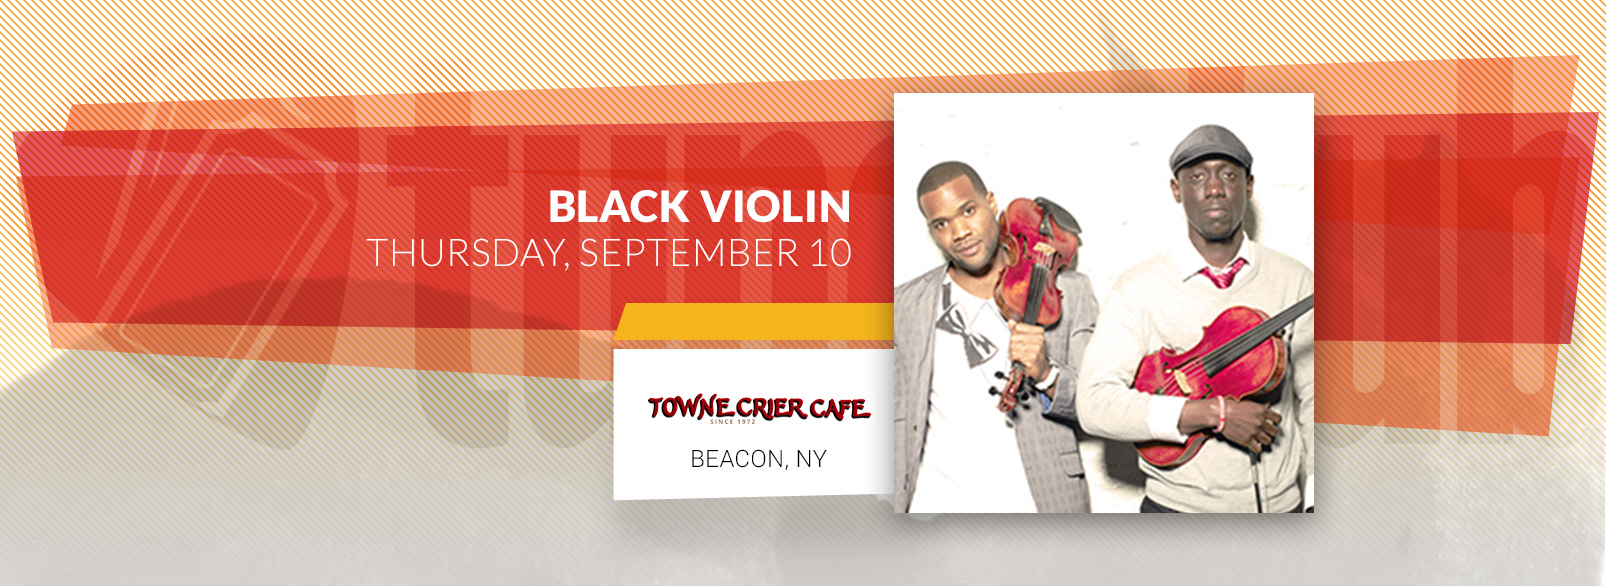 Black Violin @ The Towne Crier Cafe